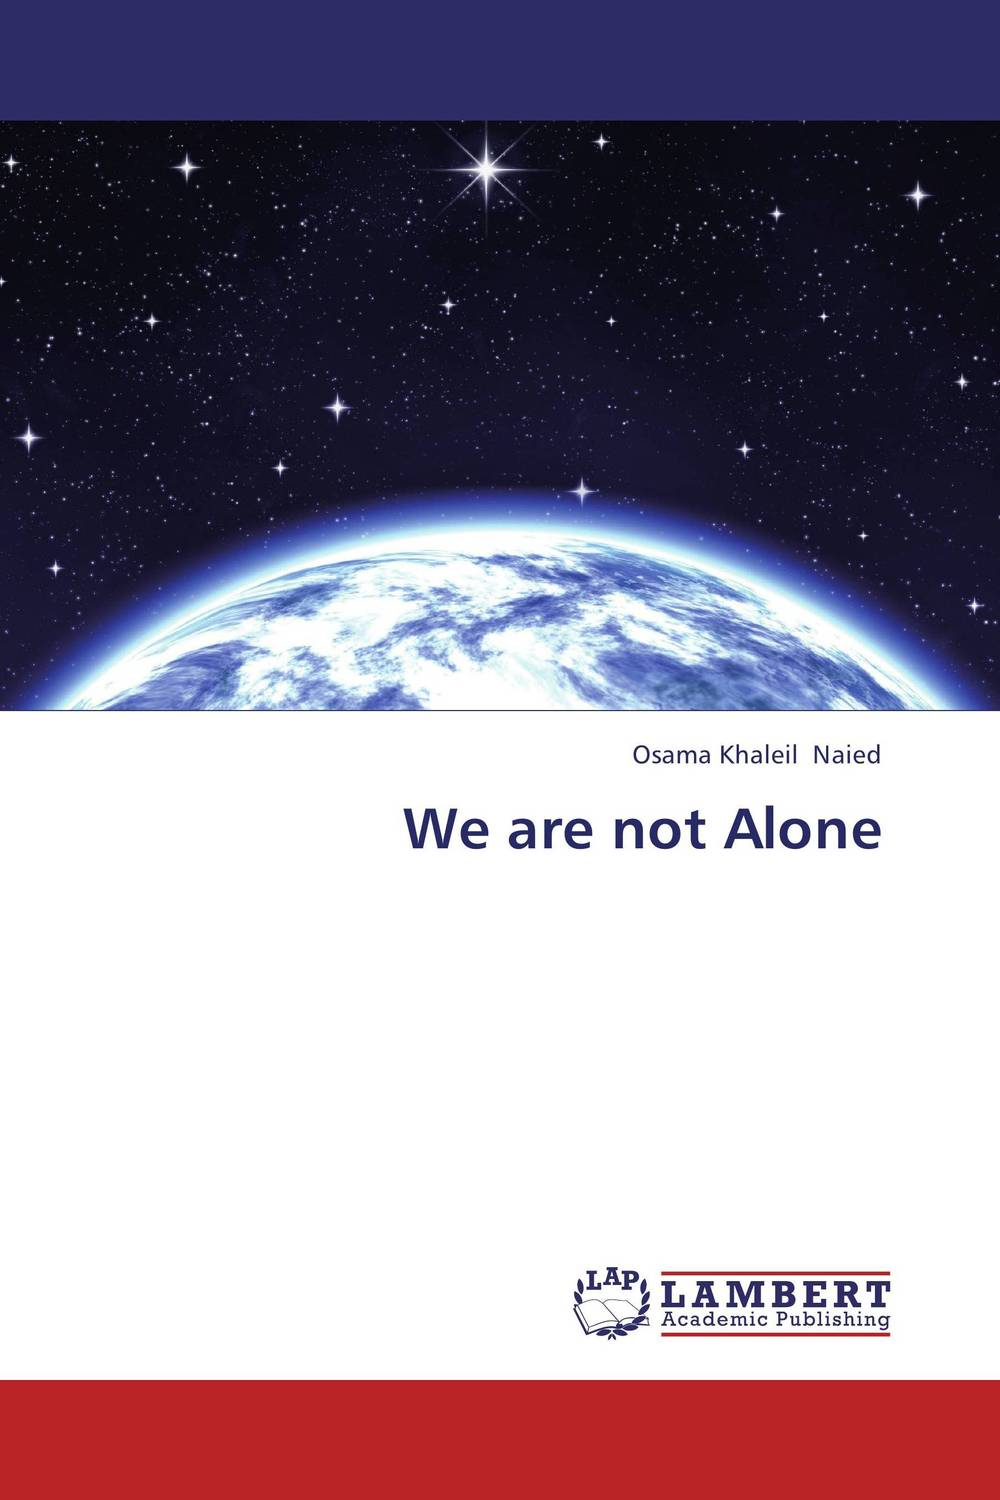 We are not Alone another